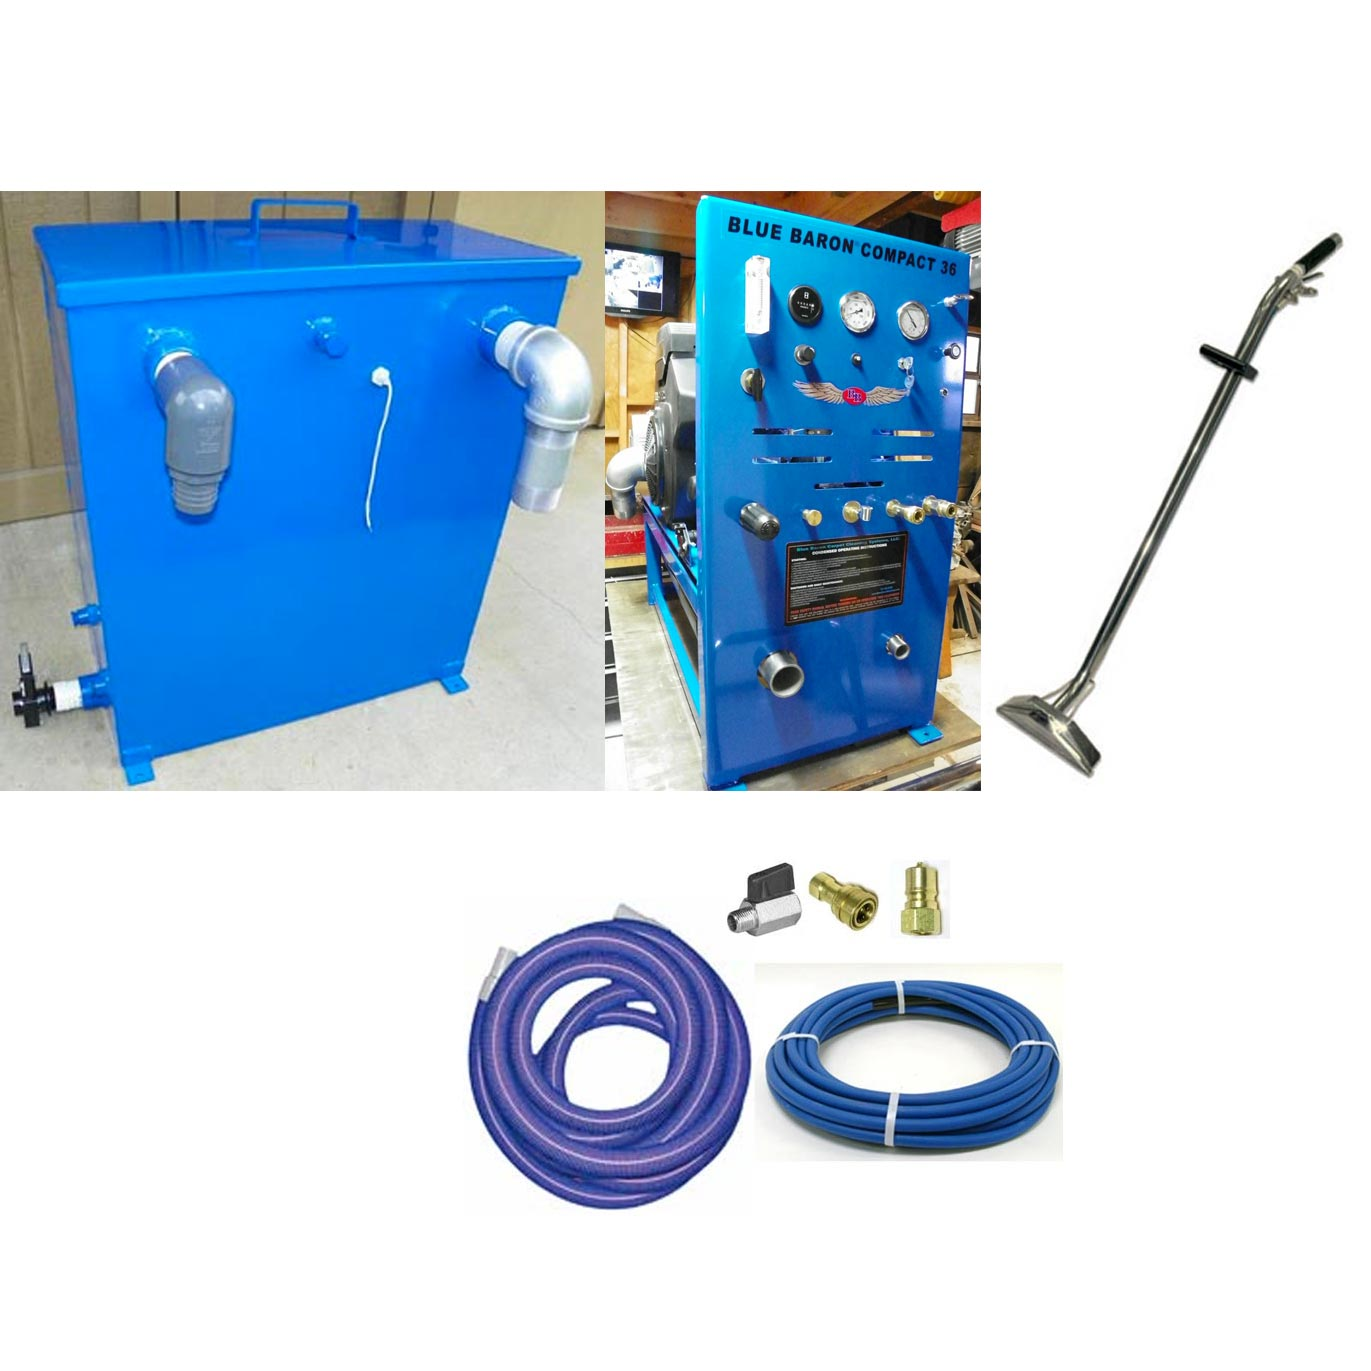 -Blue Baron Compact 36 Truckmount 23.5 Hp Belt Drive Starter Package In Stock  [BB Compact 36] NEW